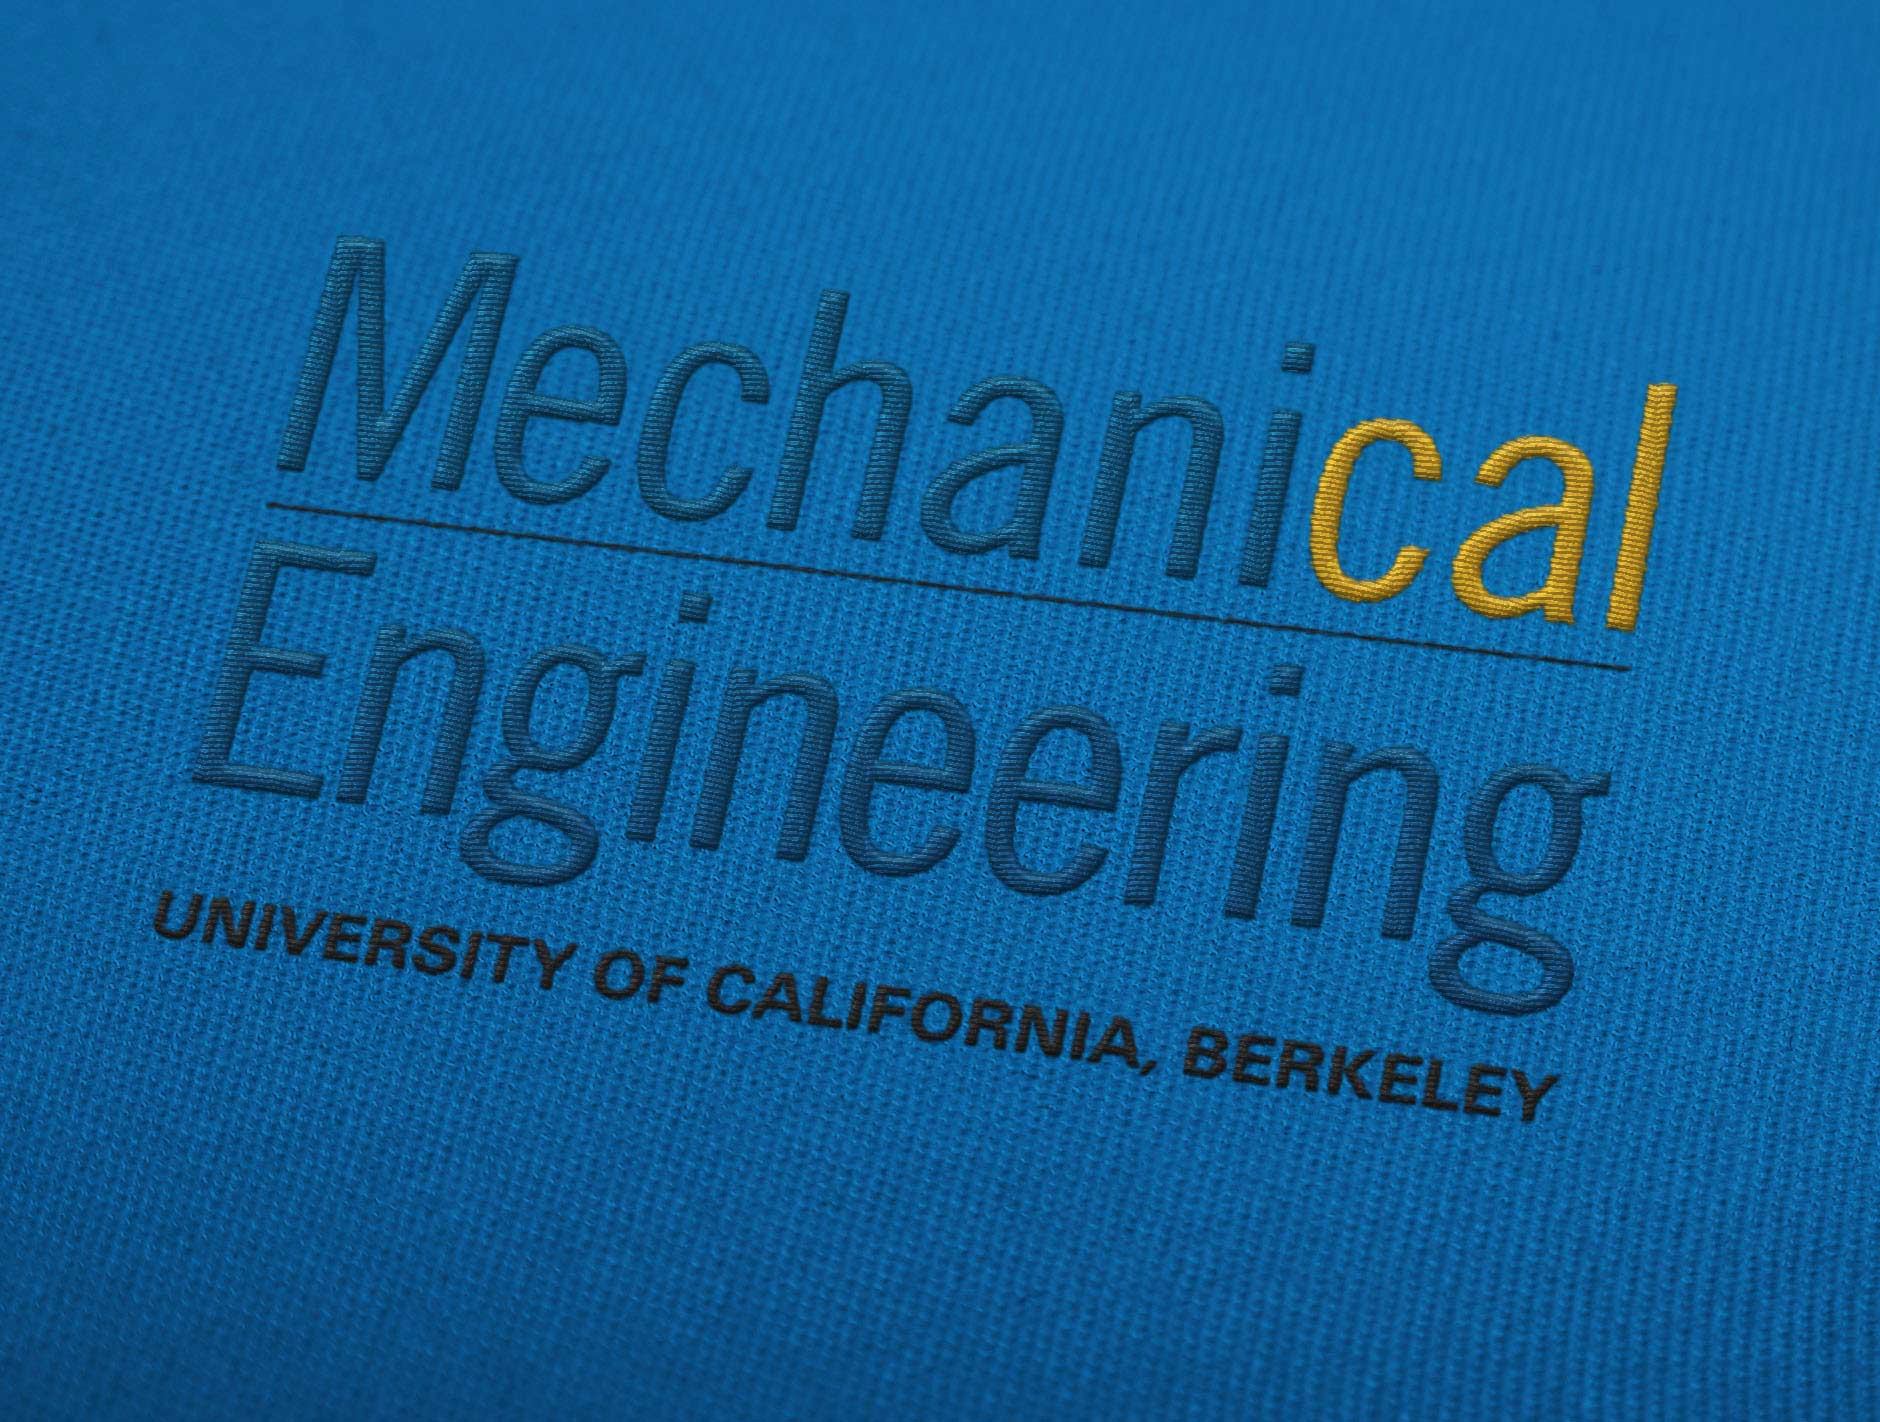 UCB Mechanical Engineering Identity Design